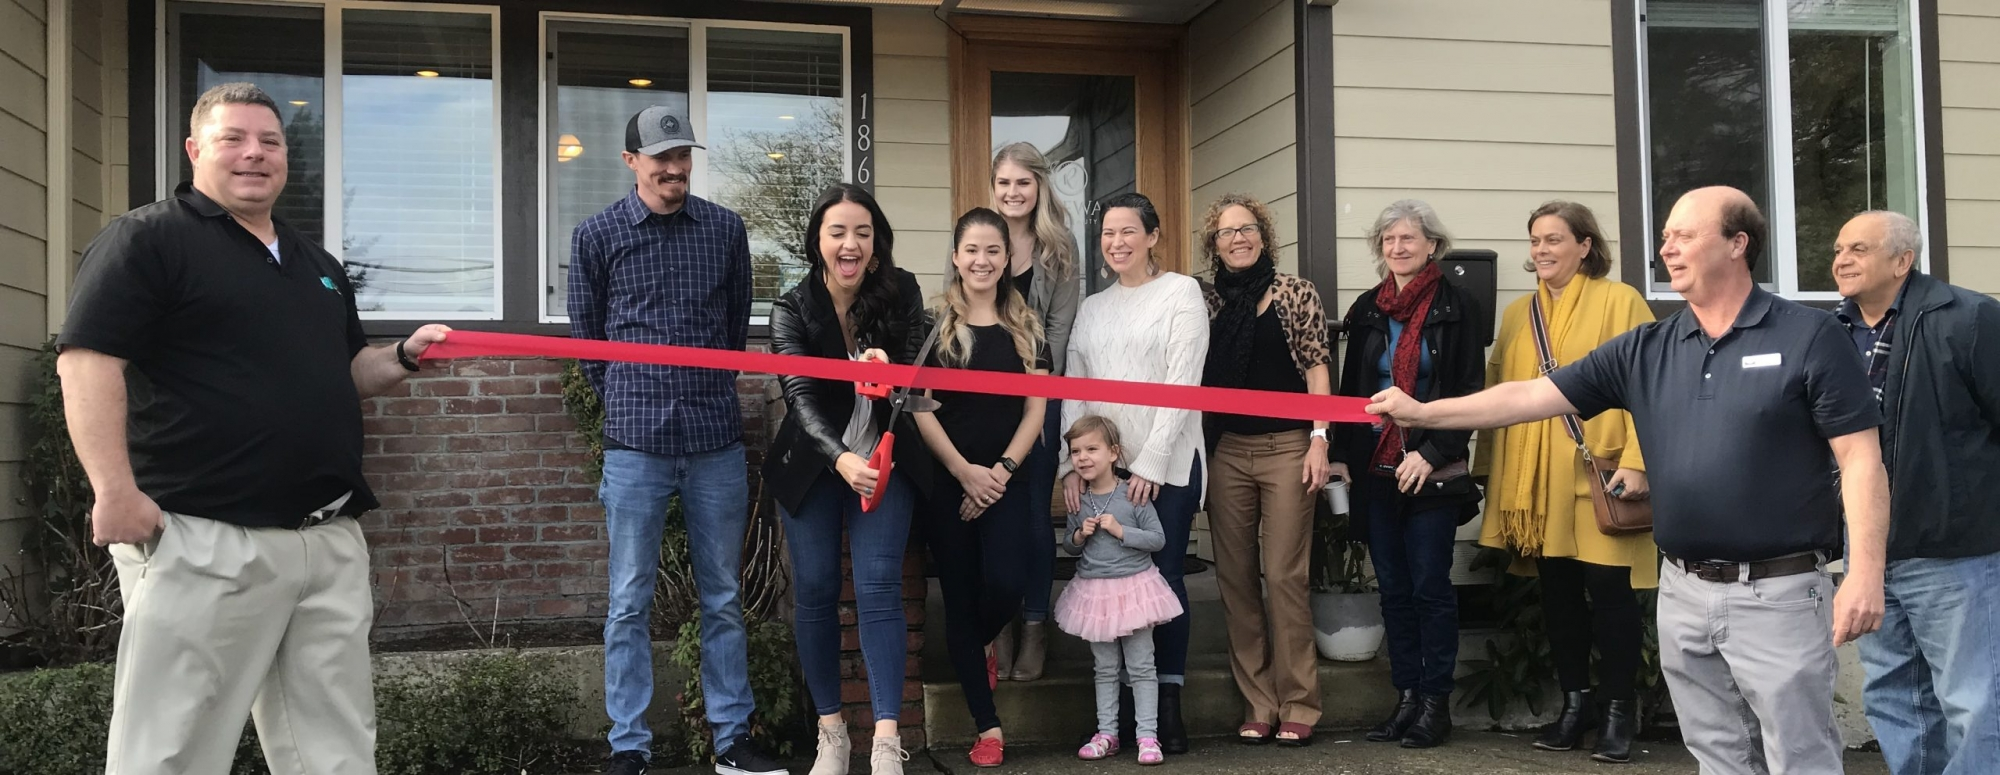 Ribbon Cutting for Renewal Spa & Beauty